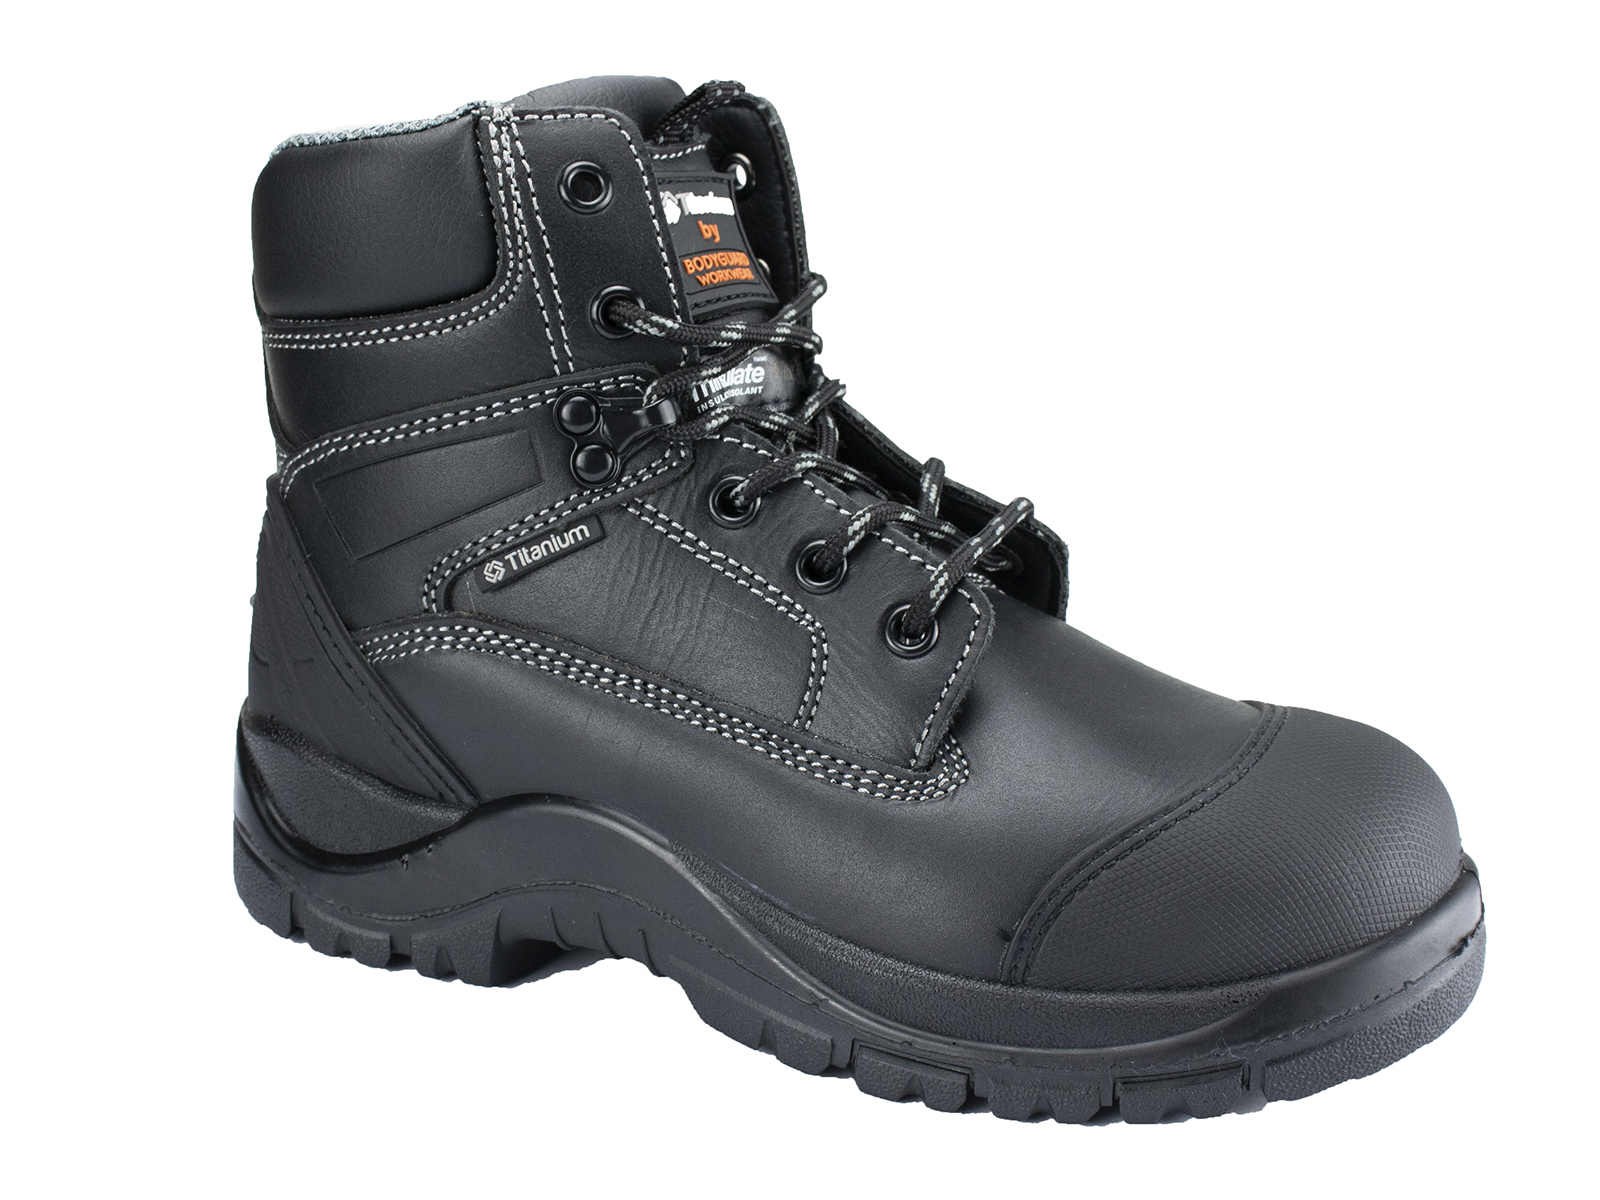 Titanium Leather Safety Boots